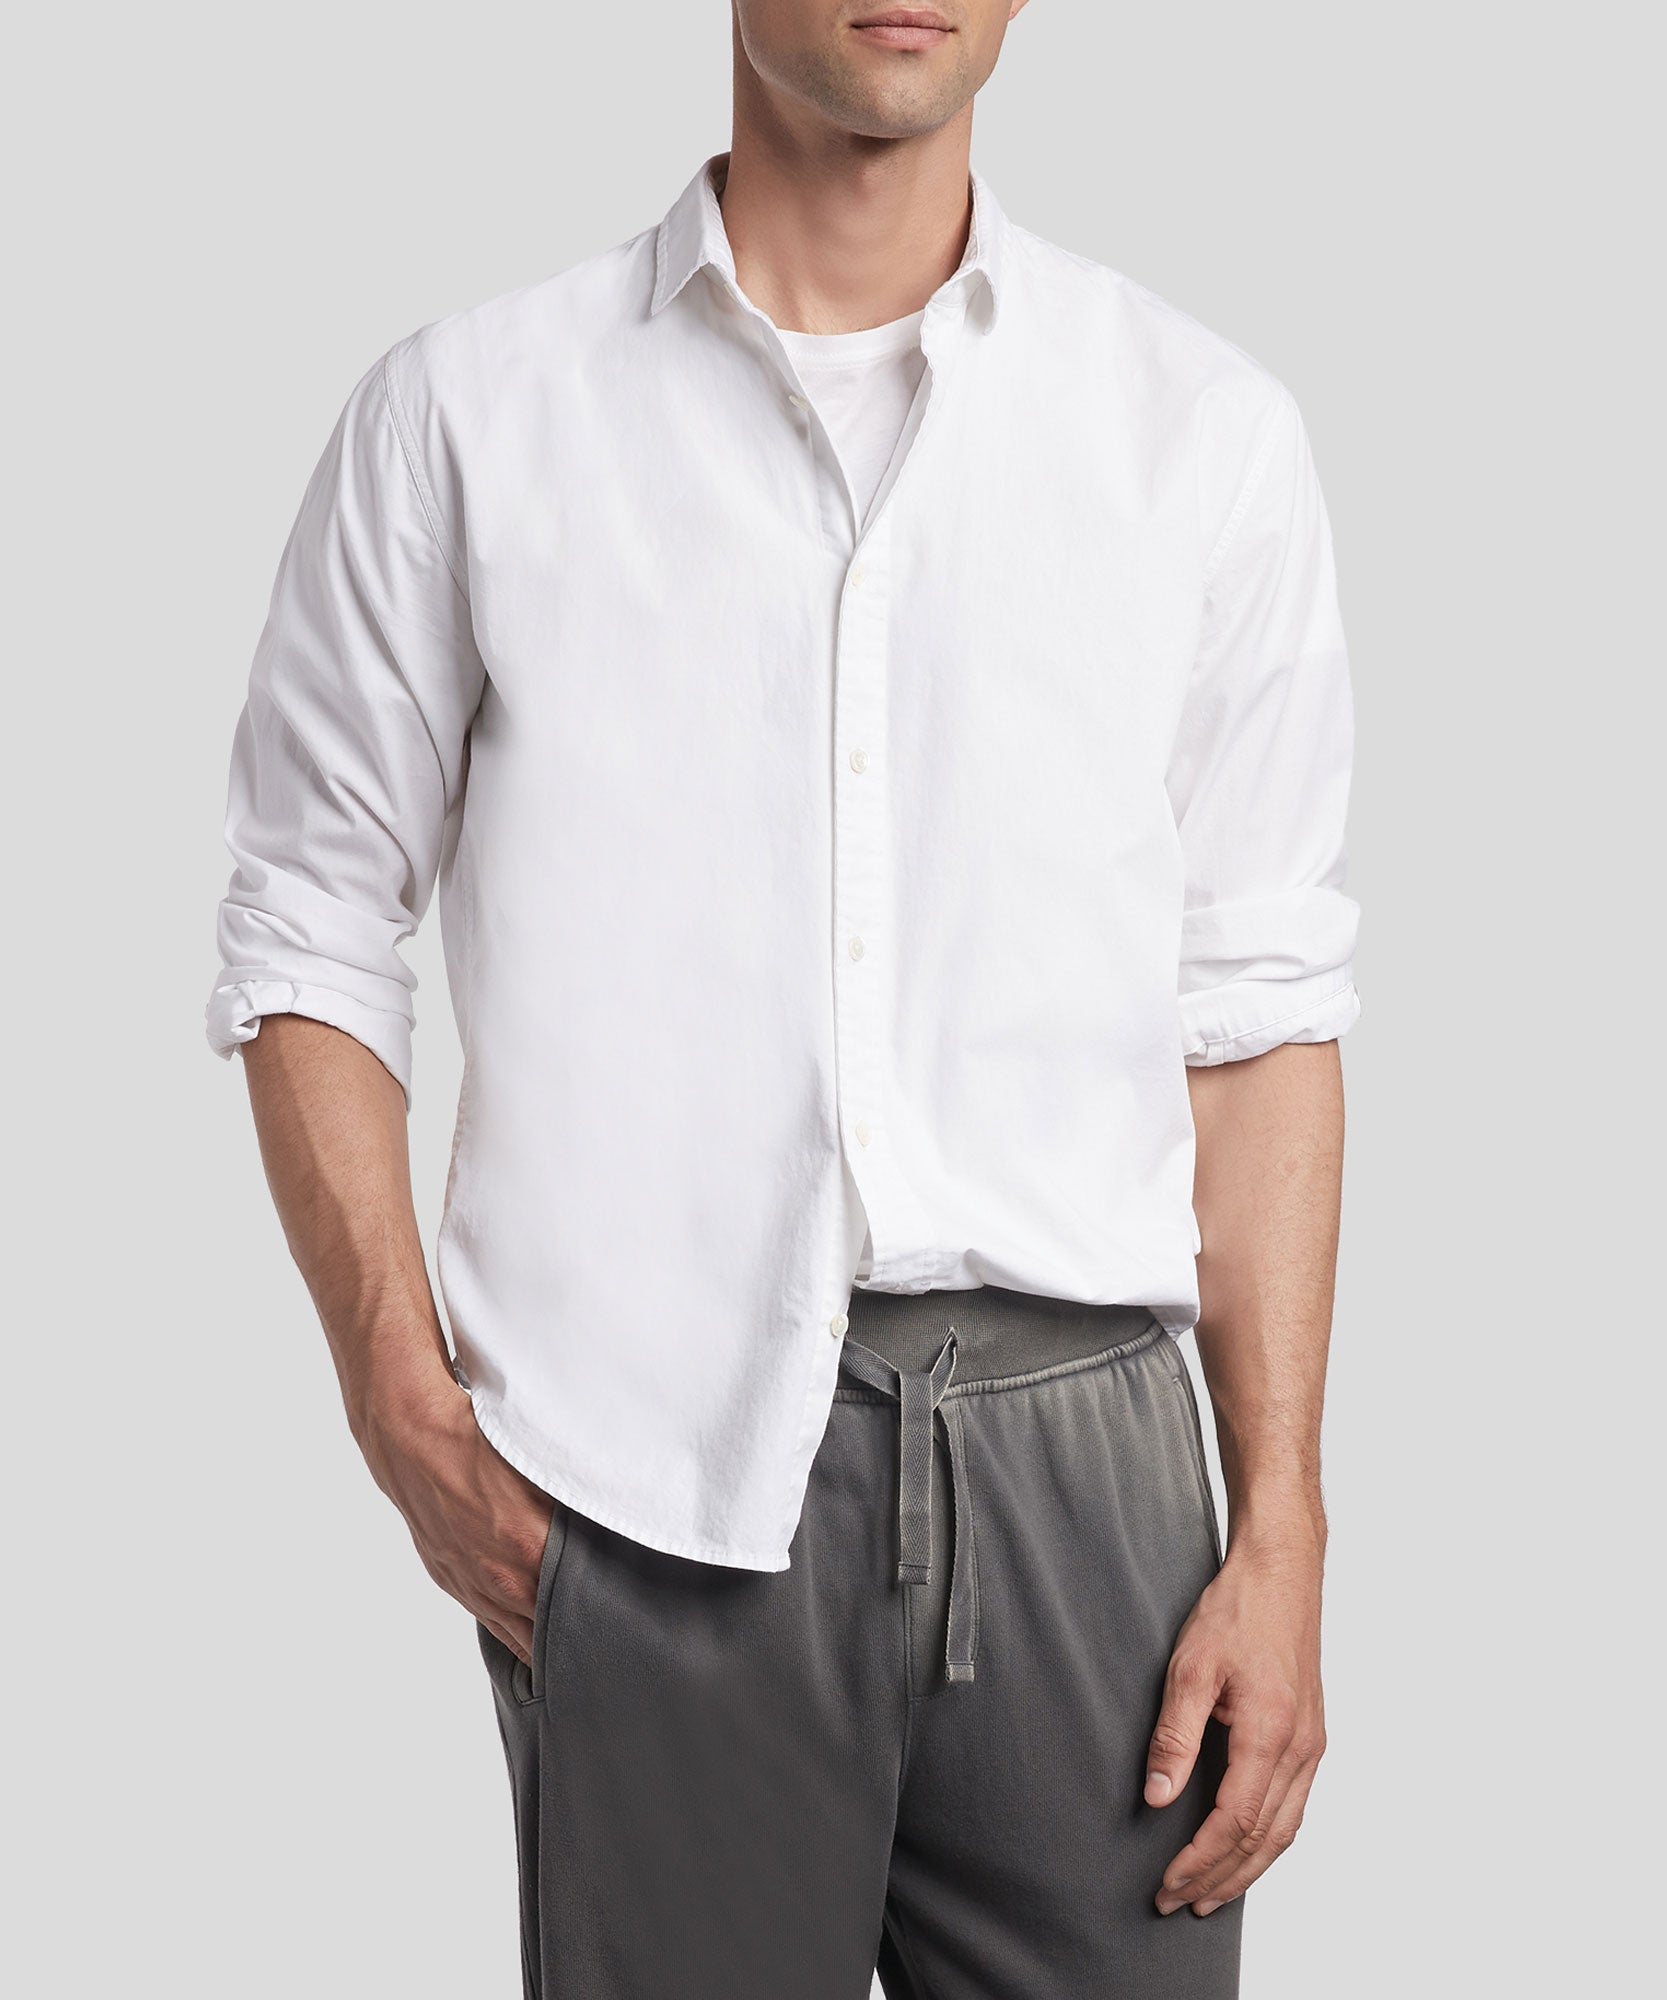 White Cotton Poplin Shirt - Men's Cotton Button Down Shirt by ATM Anthony Thomas Melillo